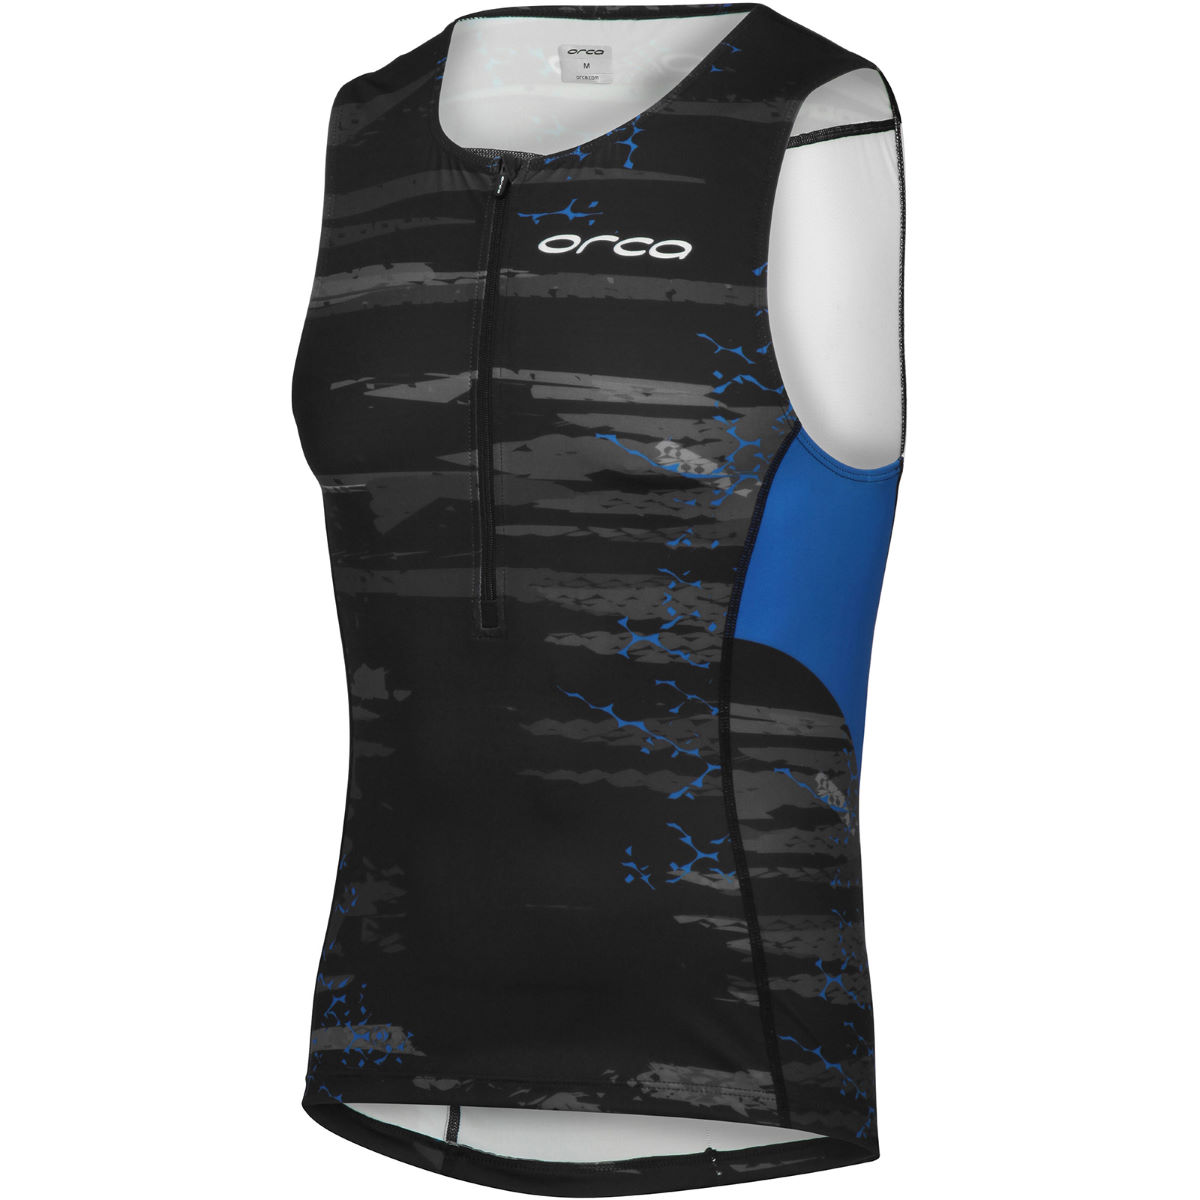 Maillot de triathlon Orca Tex-Abs (exclusivité Wiggle) - Medium